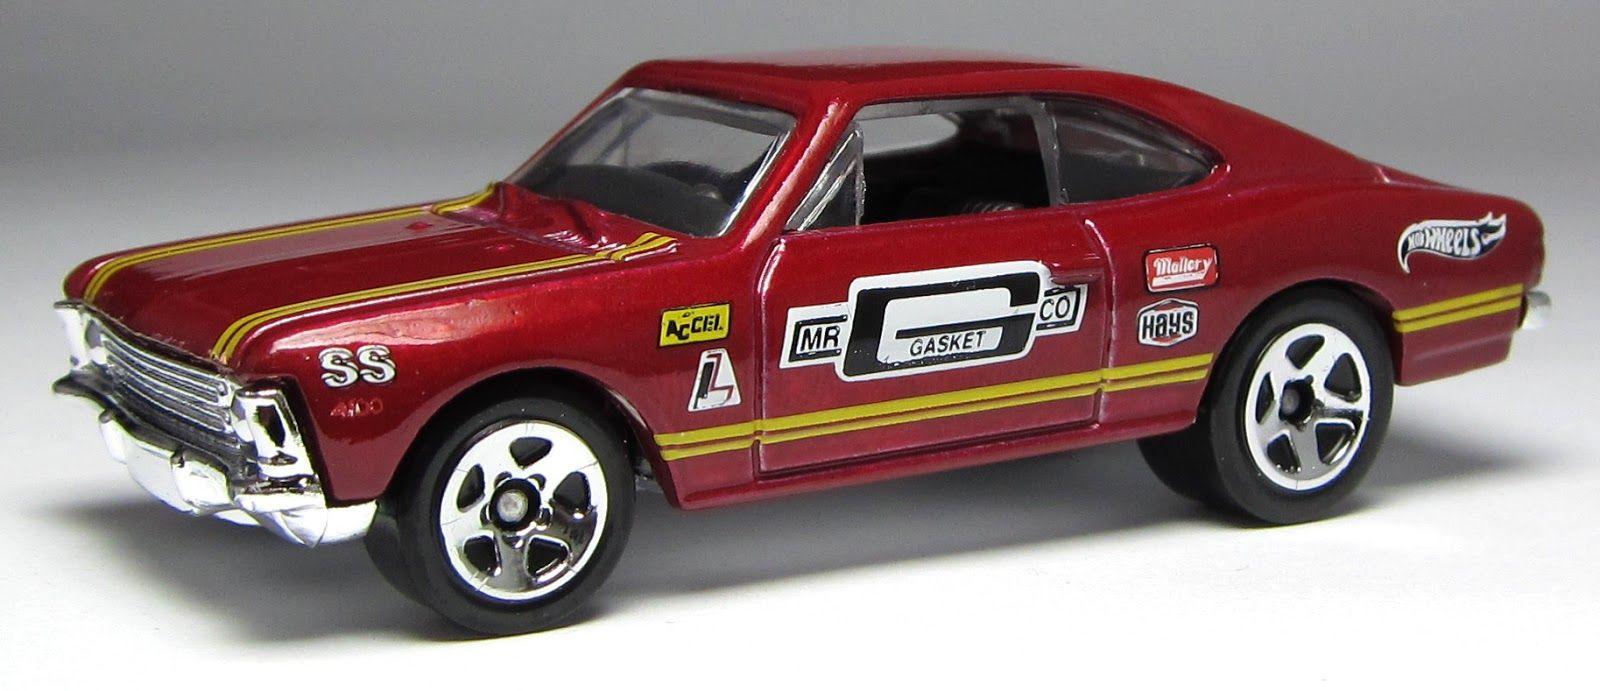 1000 images about hot wheels i like on pinterest plymouth redline and trucks - Rare Hot Wheels Cars List